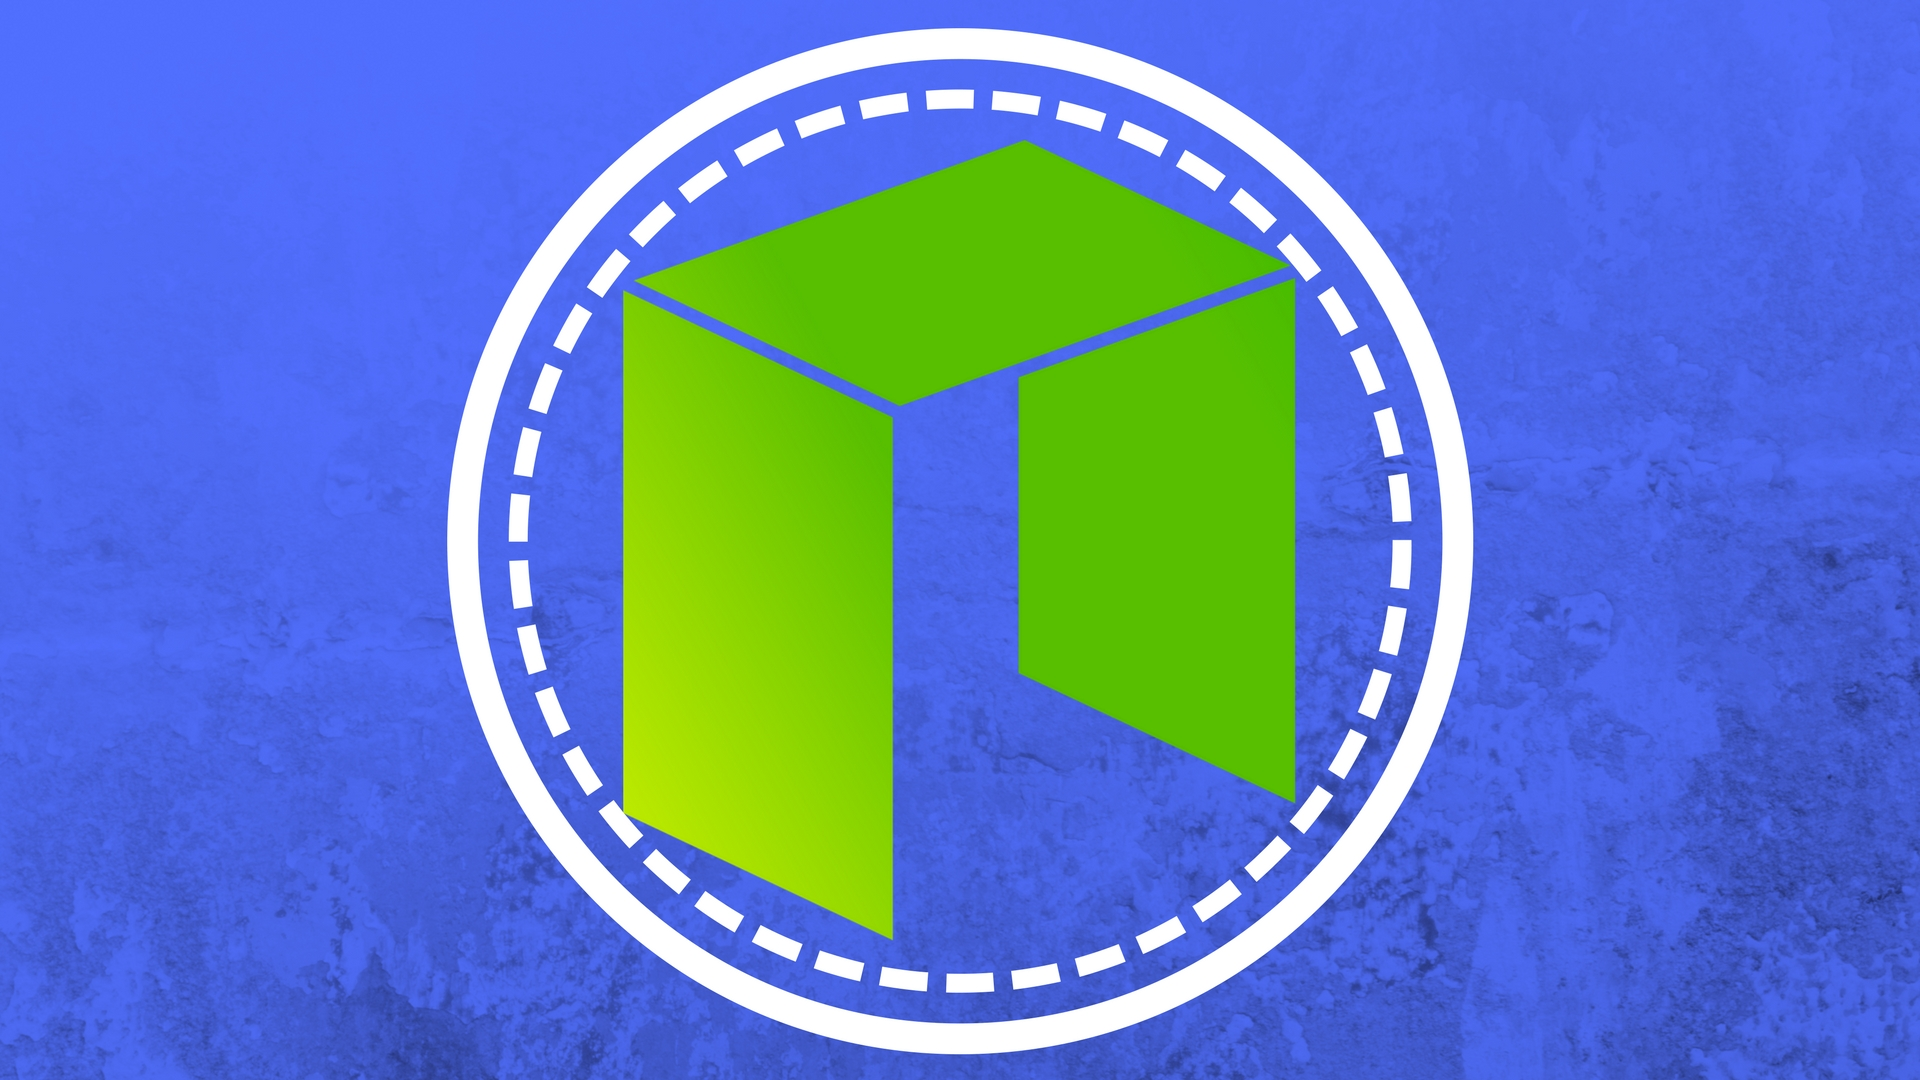 NEO - Cheap Cryptocurrencies For 2018